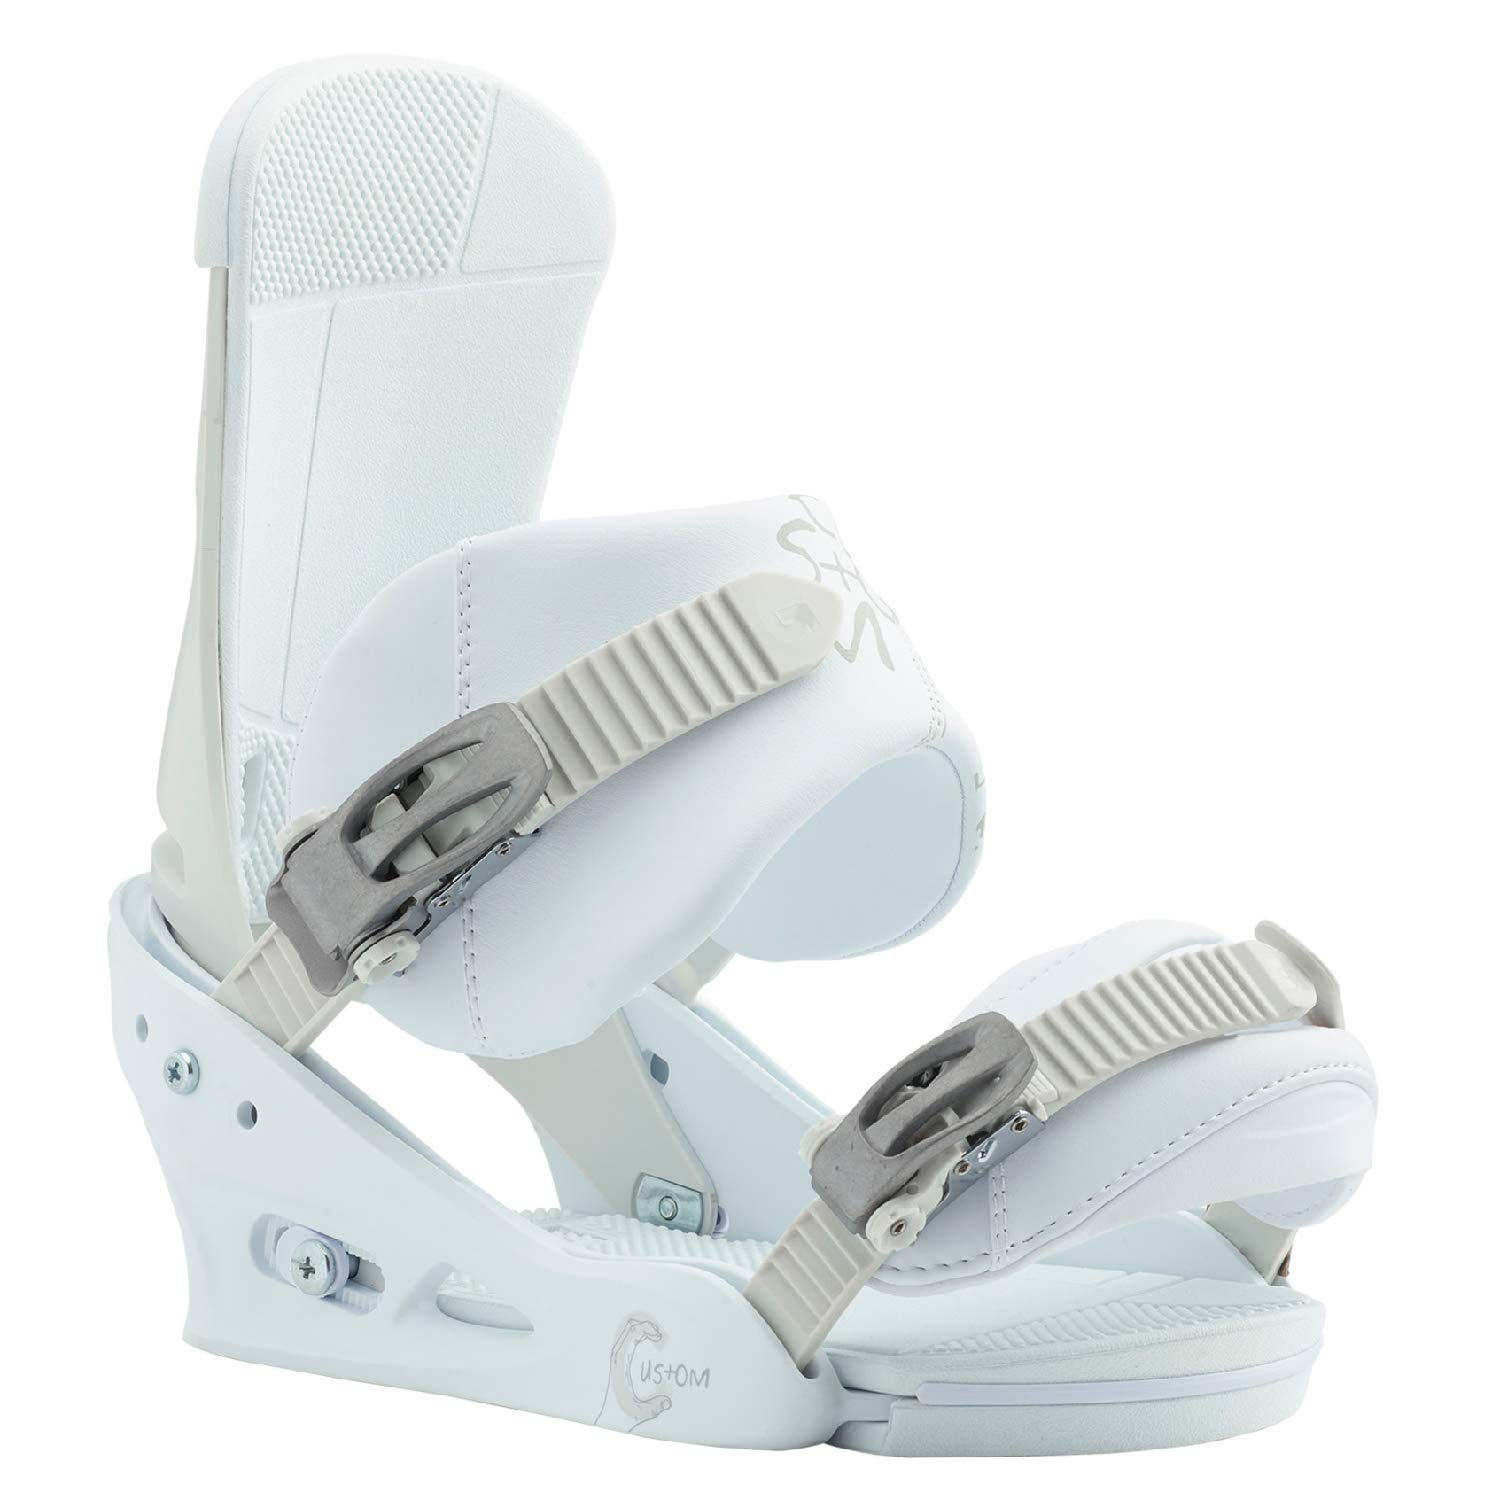 Burton Custom Snowboard Bindings White Sz L (10+)